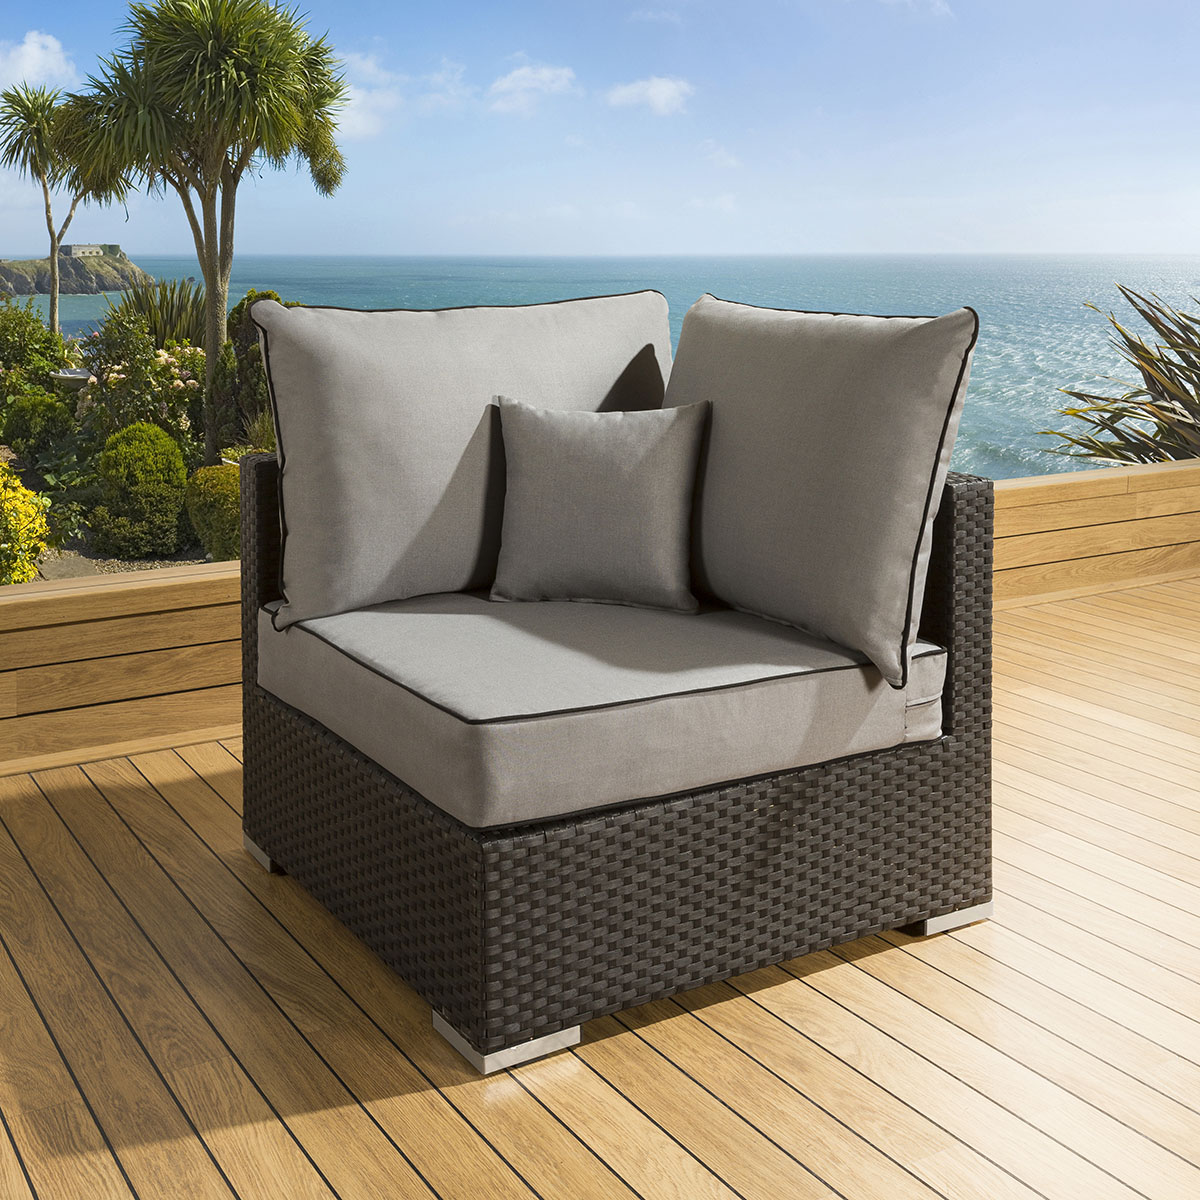 outdoor corner sofa weather cover sofascore basketball livescore luxury garden piece rattan black grey